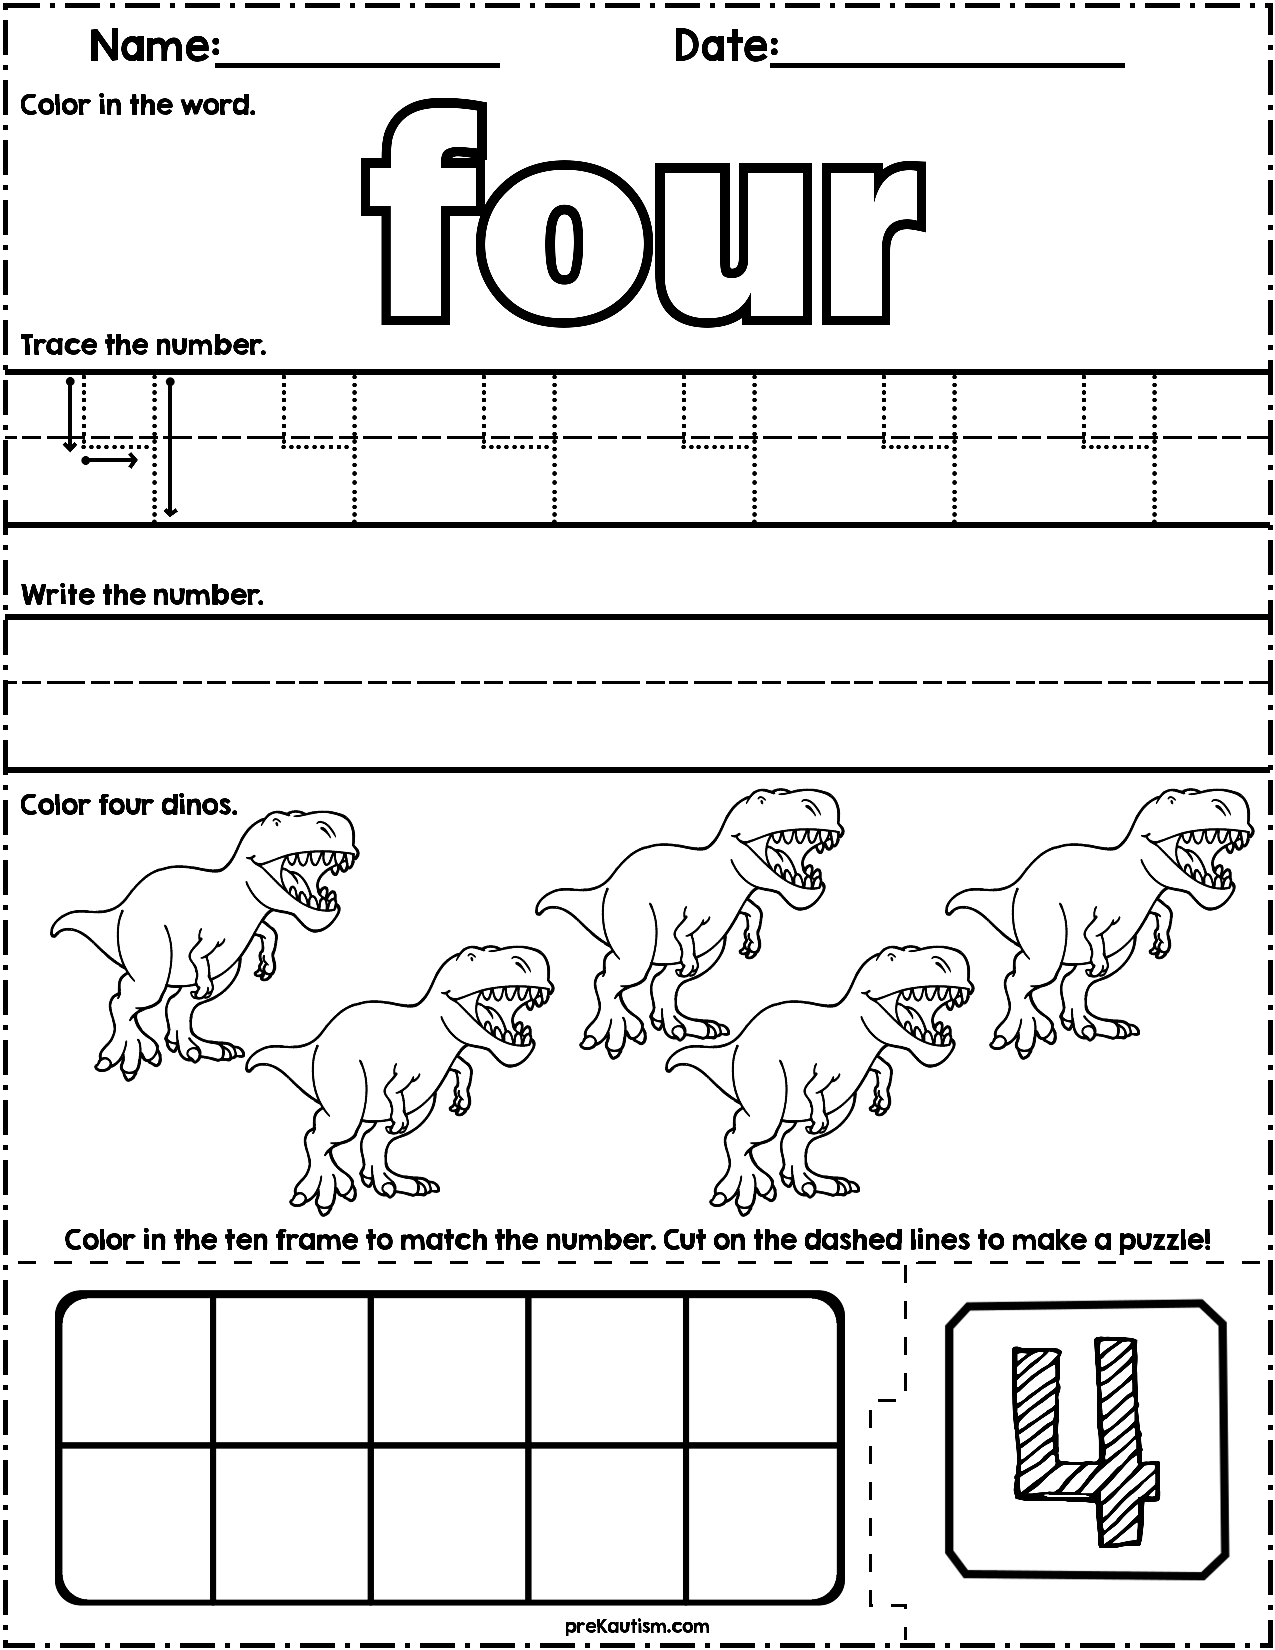 dinosaur count write math worksheets reading and writing math worksheets worksheets. Black Bedroom Furniture Sets. Home Design Ideas